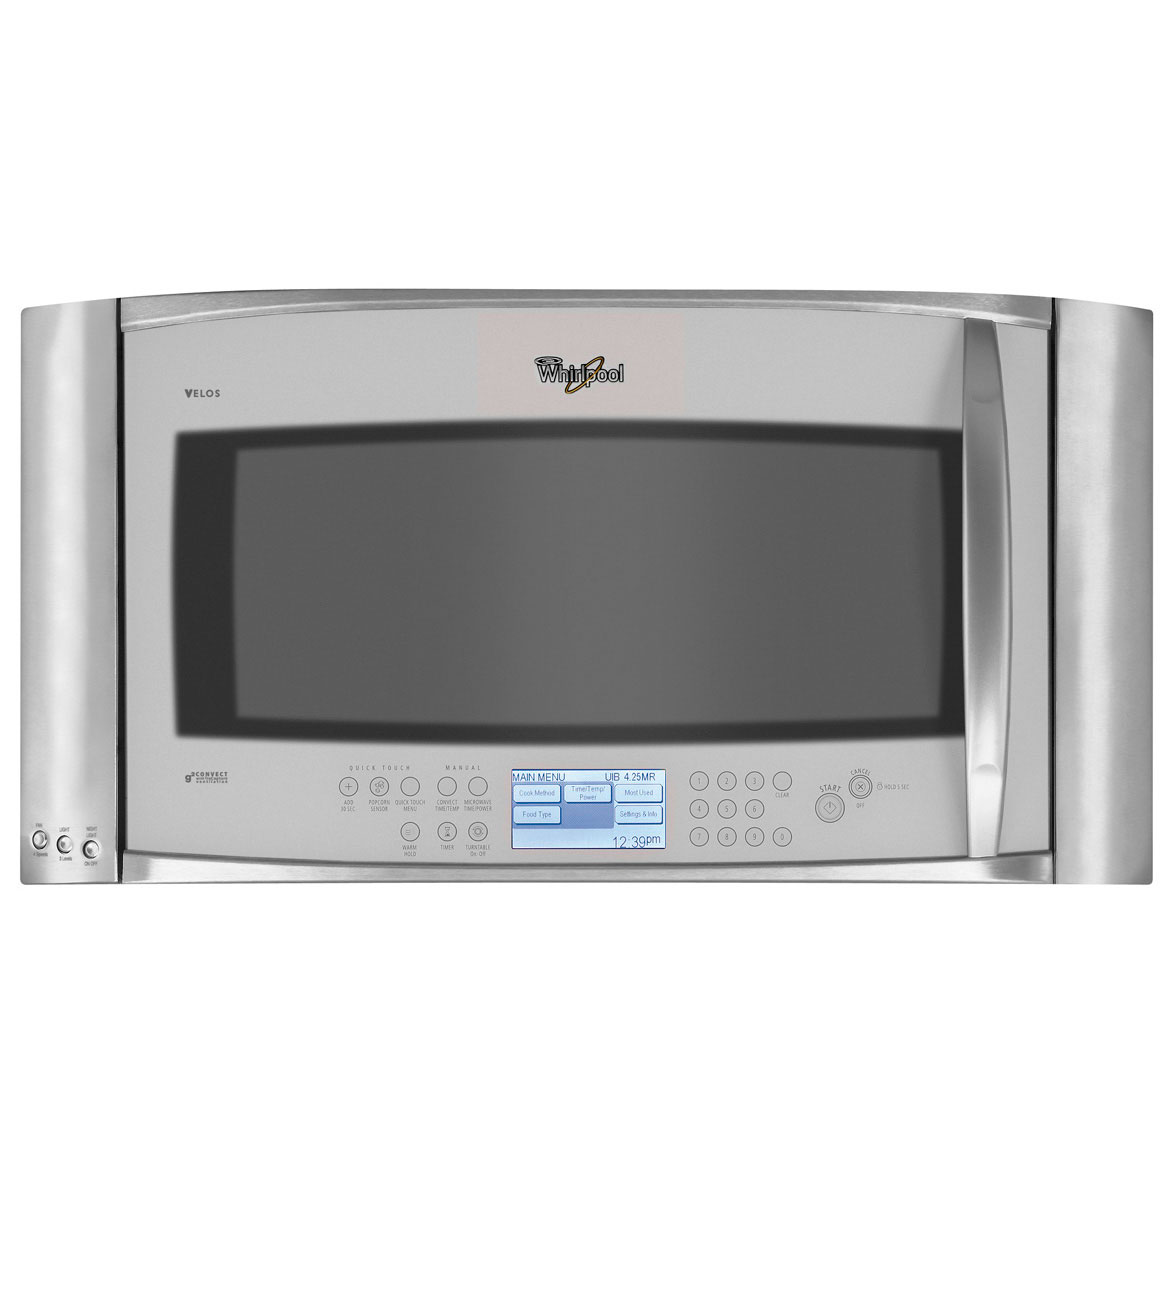 Whirlpool Gh7208xry 2 0 Cu Ft Velos Sdcook Over The